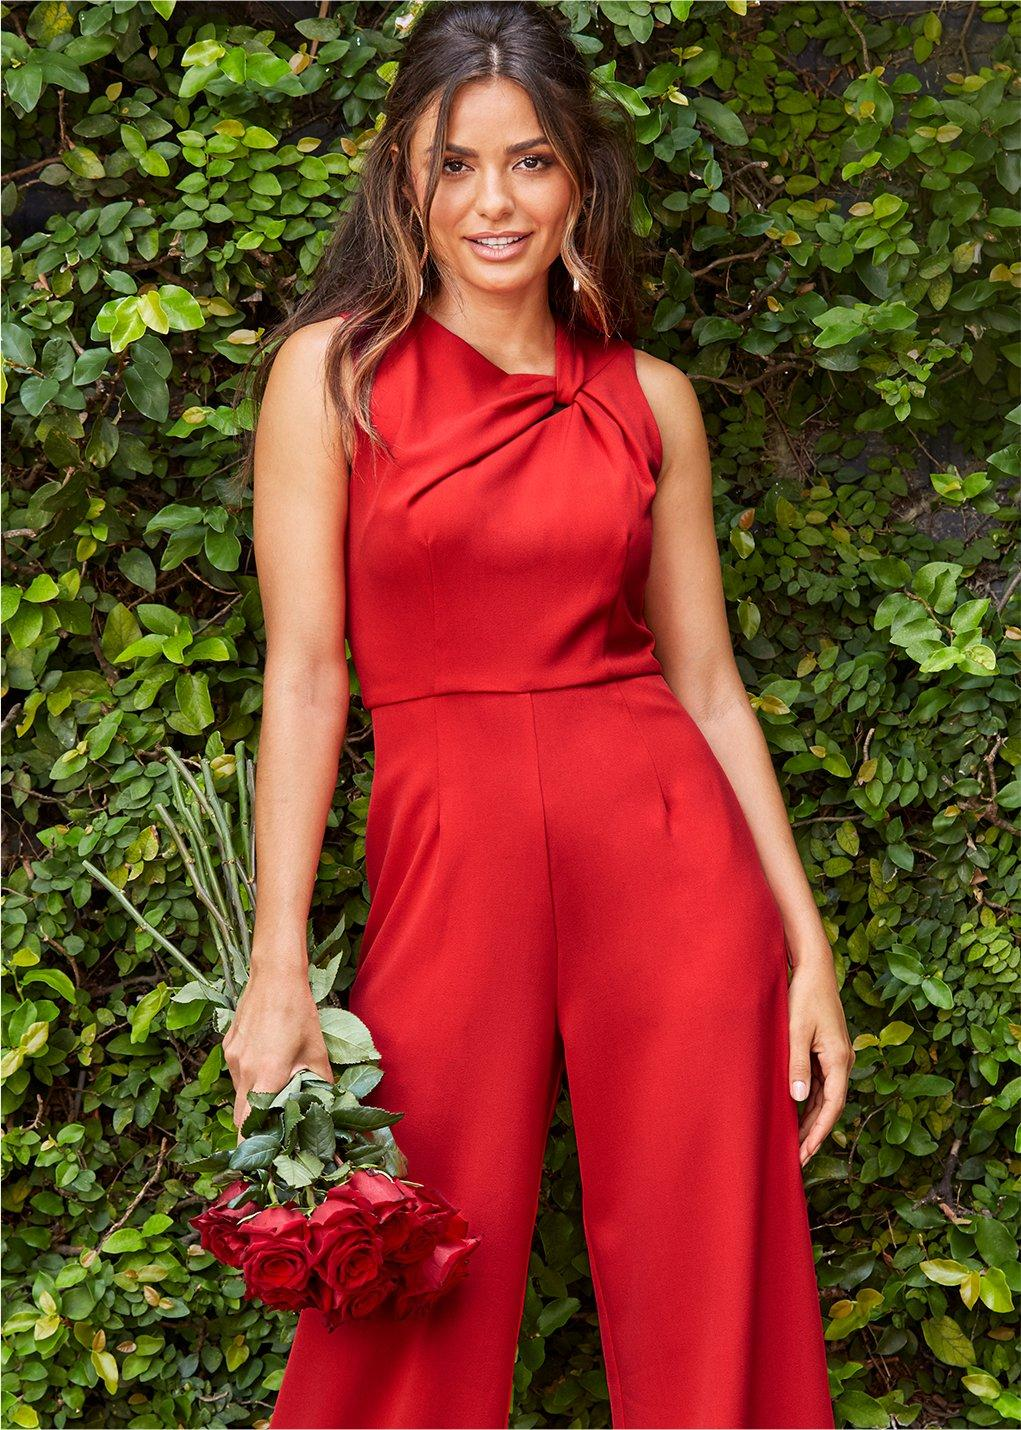 model standing in front of a hedge wearing red jumpsuit while holding a bouquet of roses.